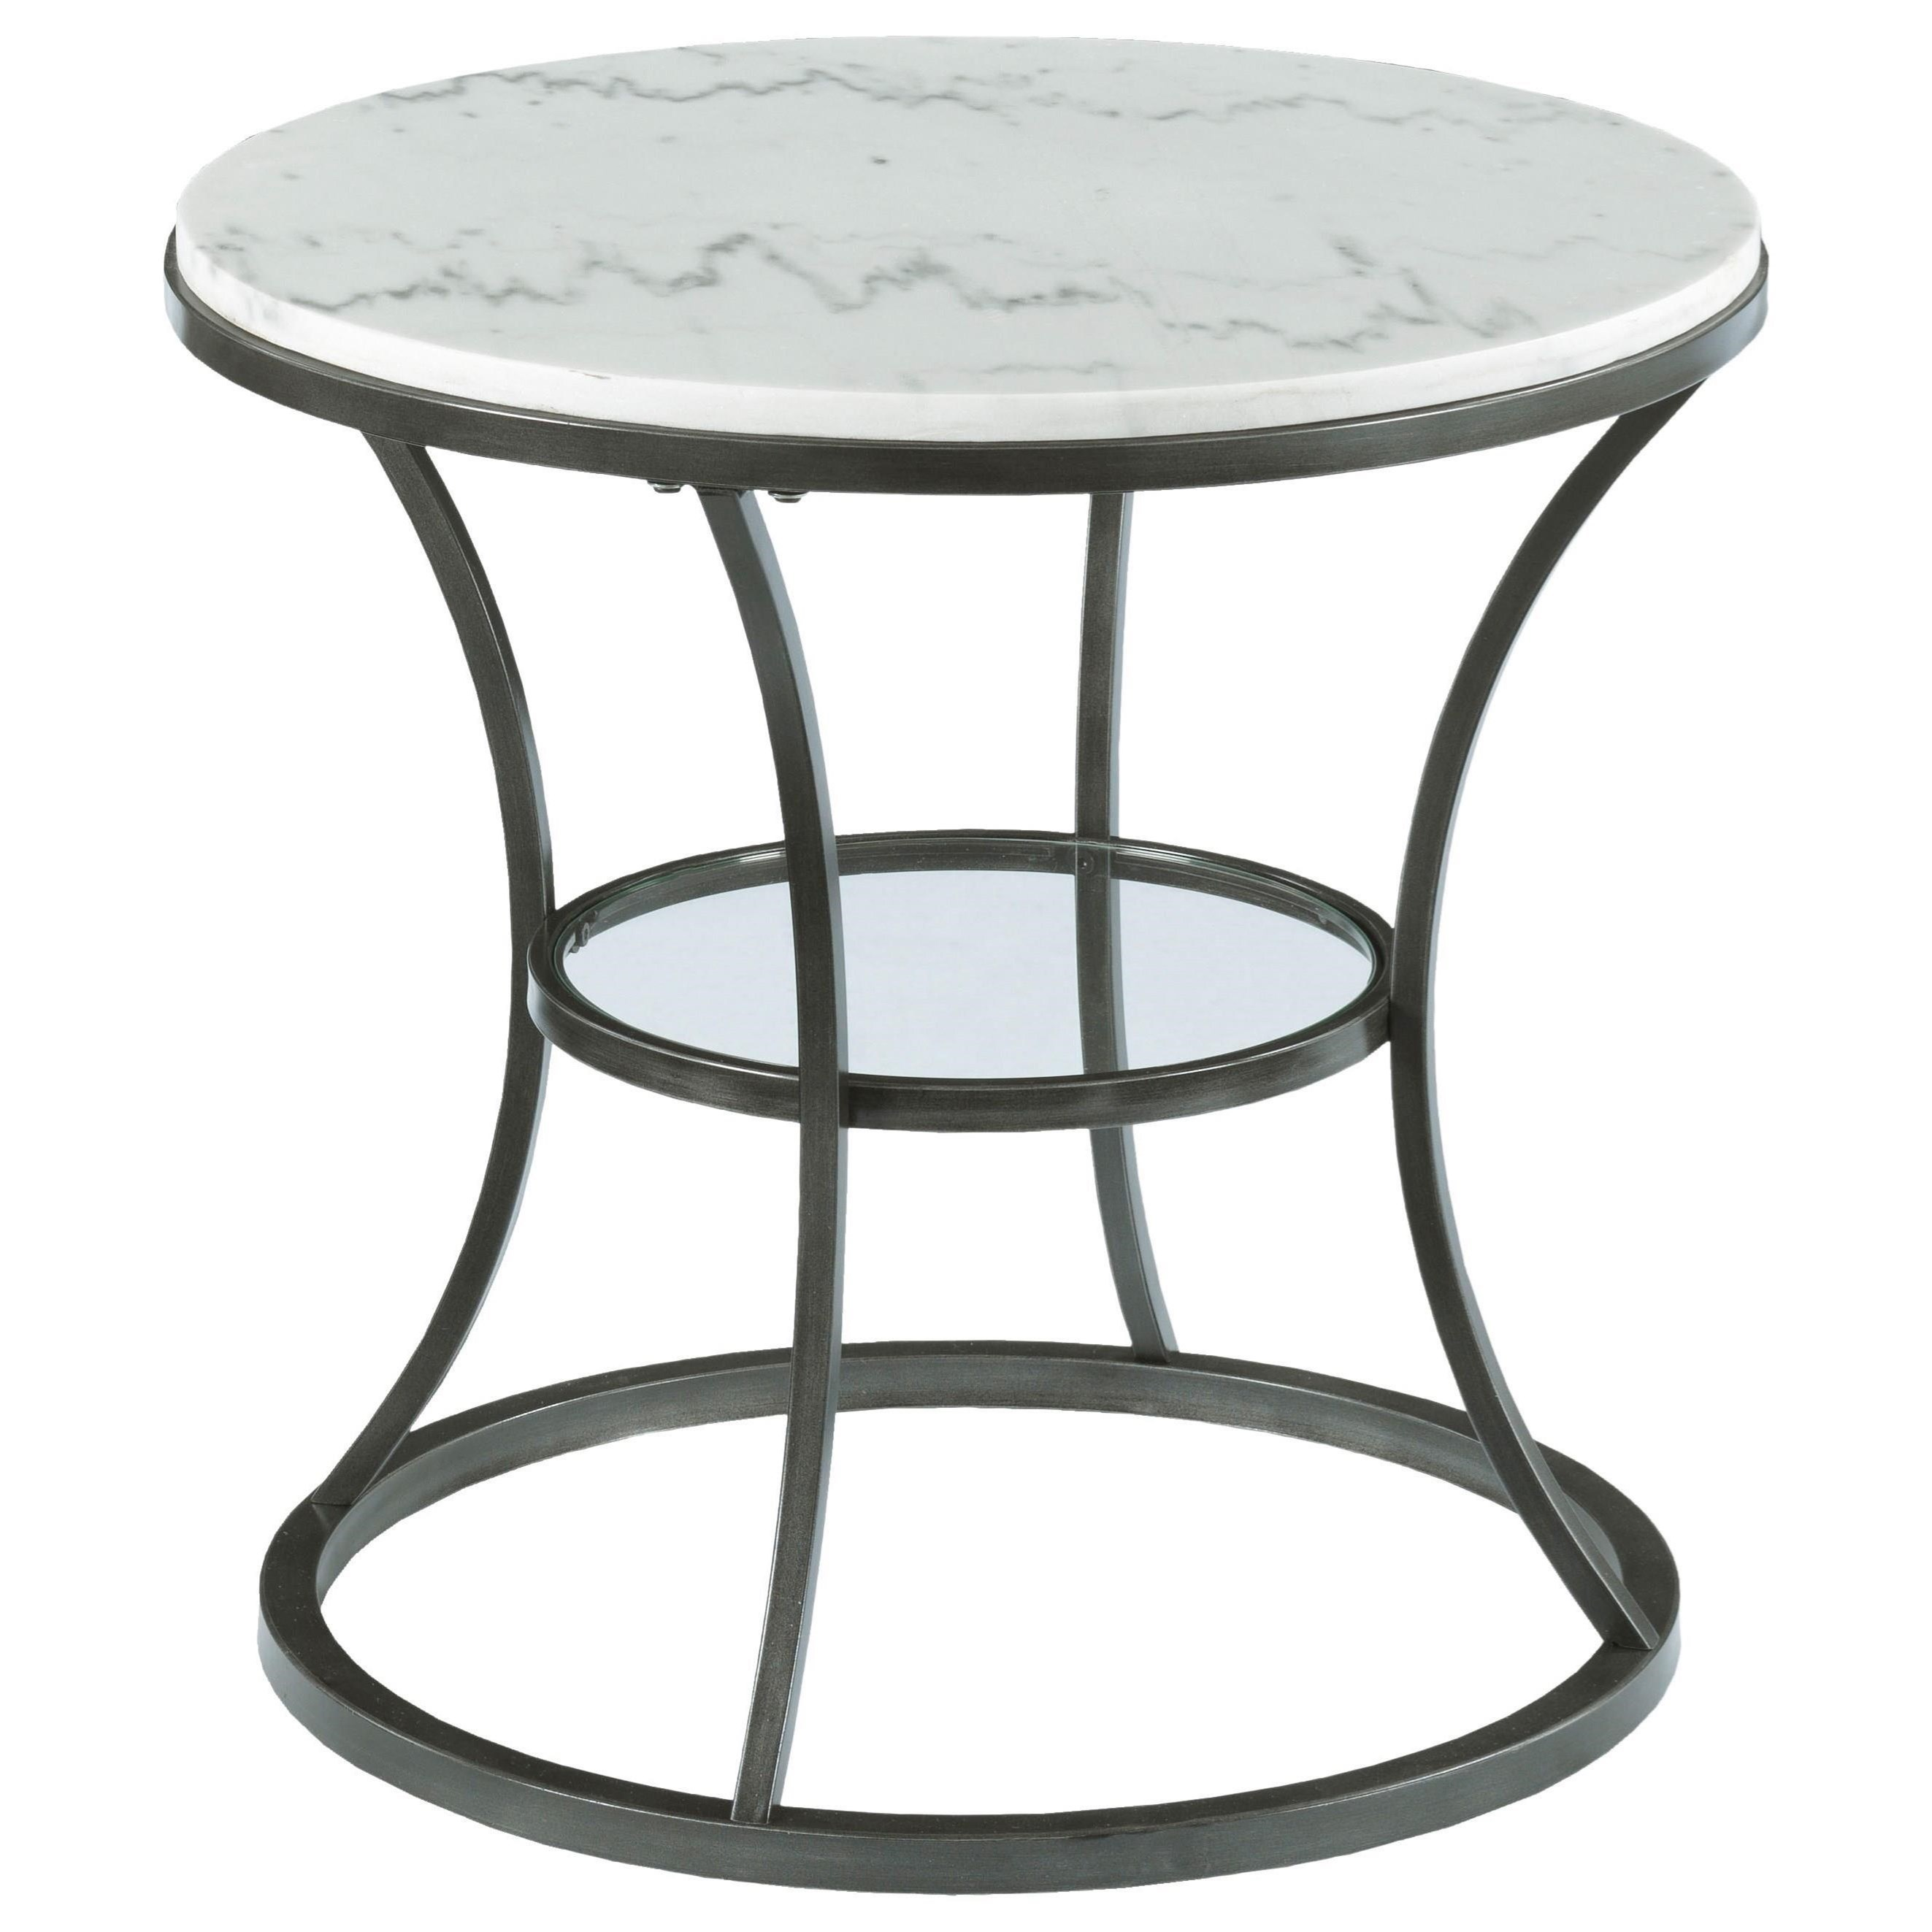 round end table with marble top and glass shelf hammary wolf products color impact tables square metal coffee behind the couch ikea rustic side cushions for white leather sofa